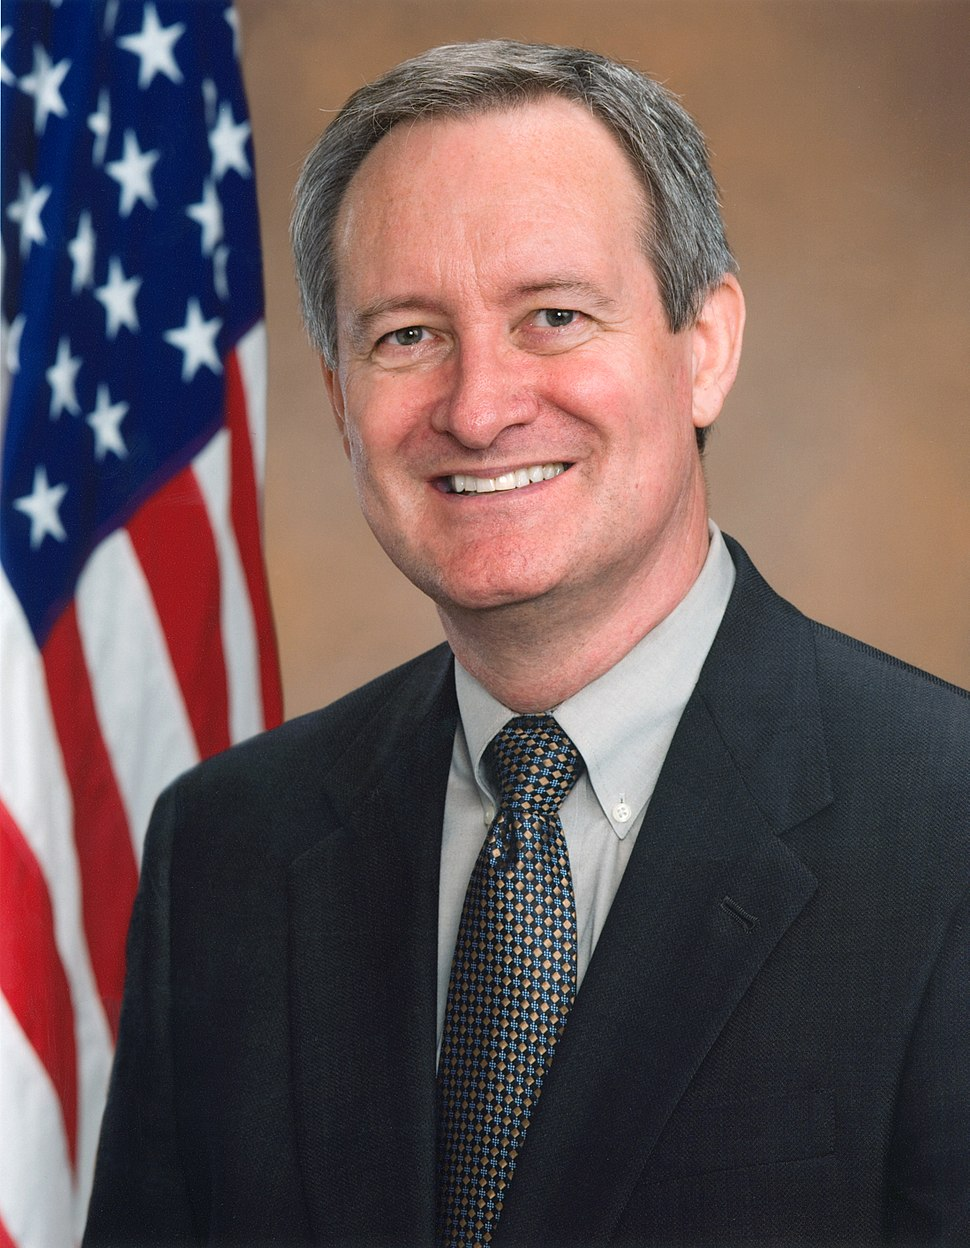 Mike Crapo Official Photo 110th Congress